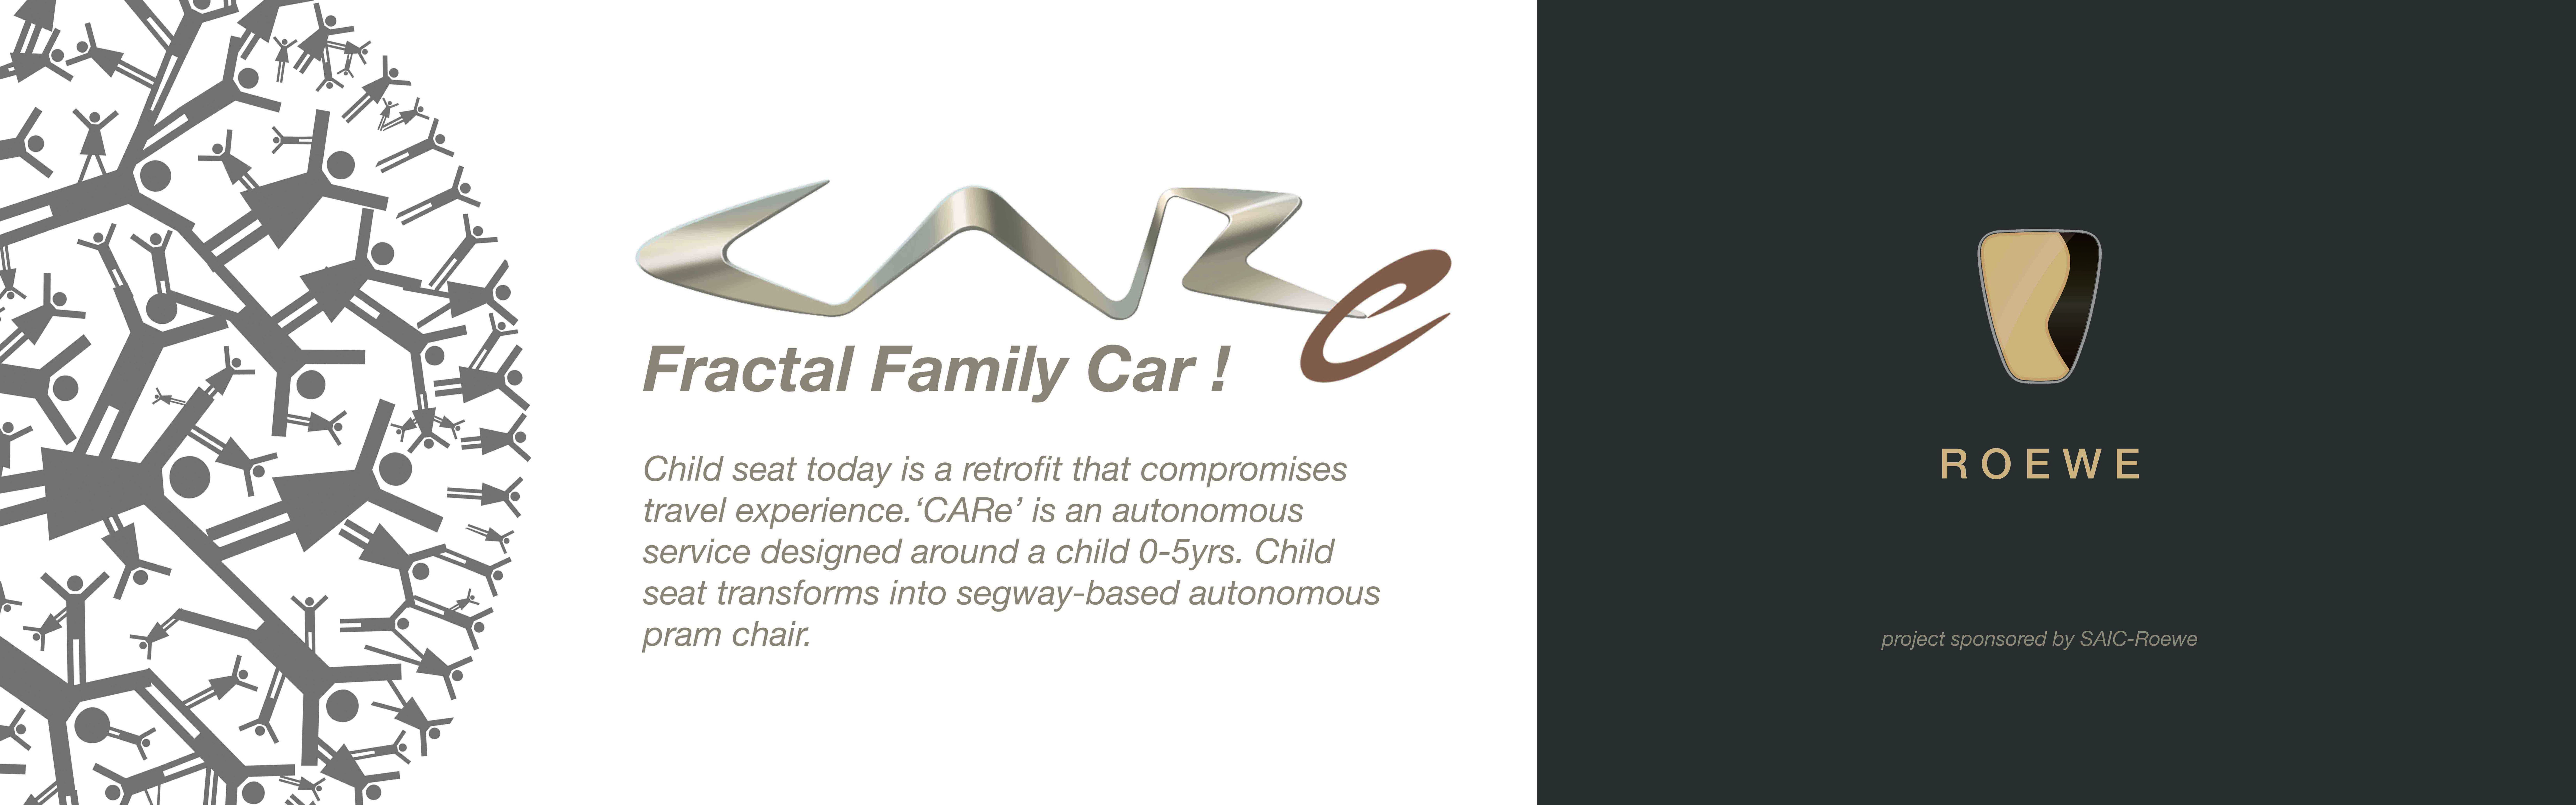 Roewe-CARe-Cover Page